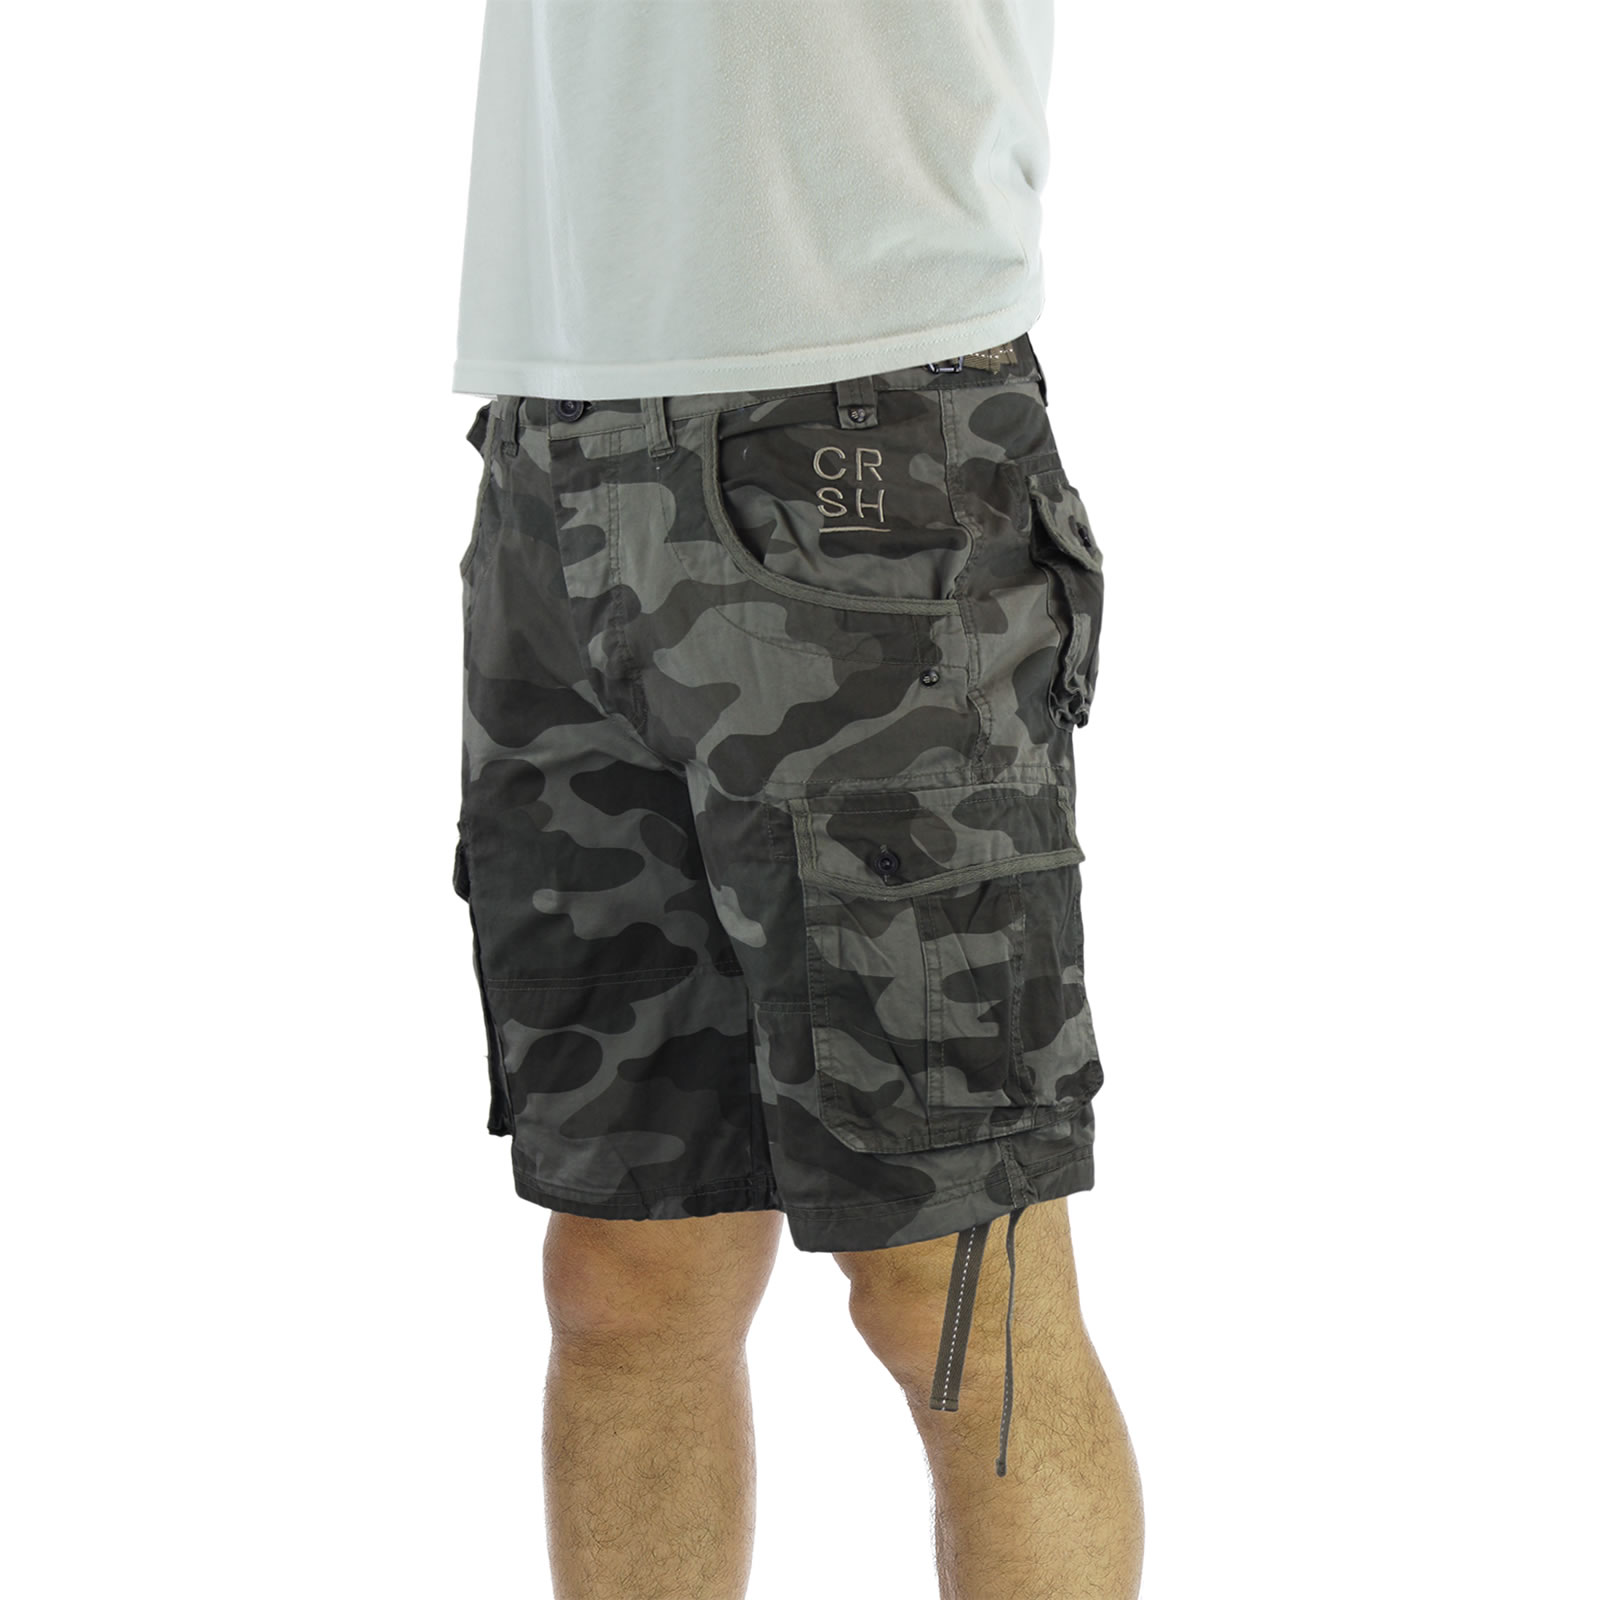 mens cargo shorts crosshatch crossfin camo army camouflage